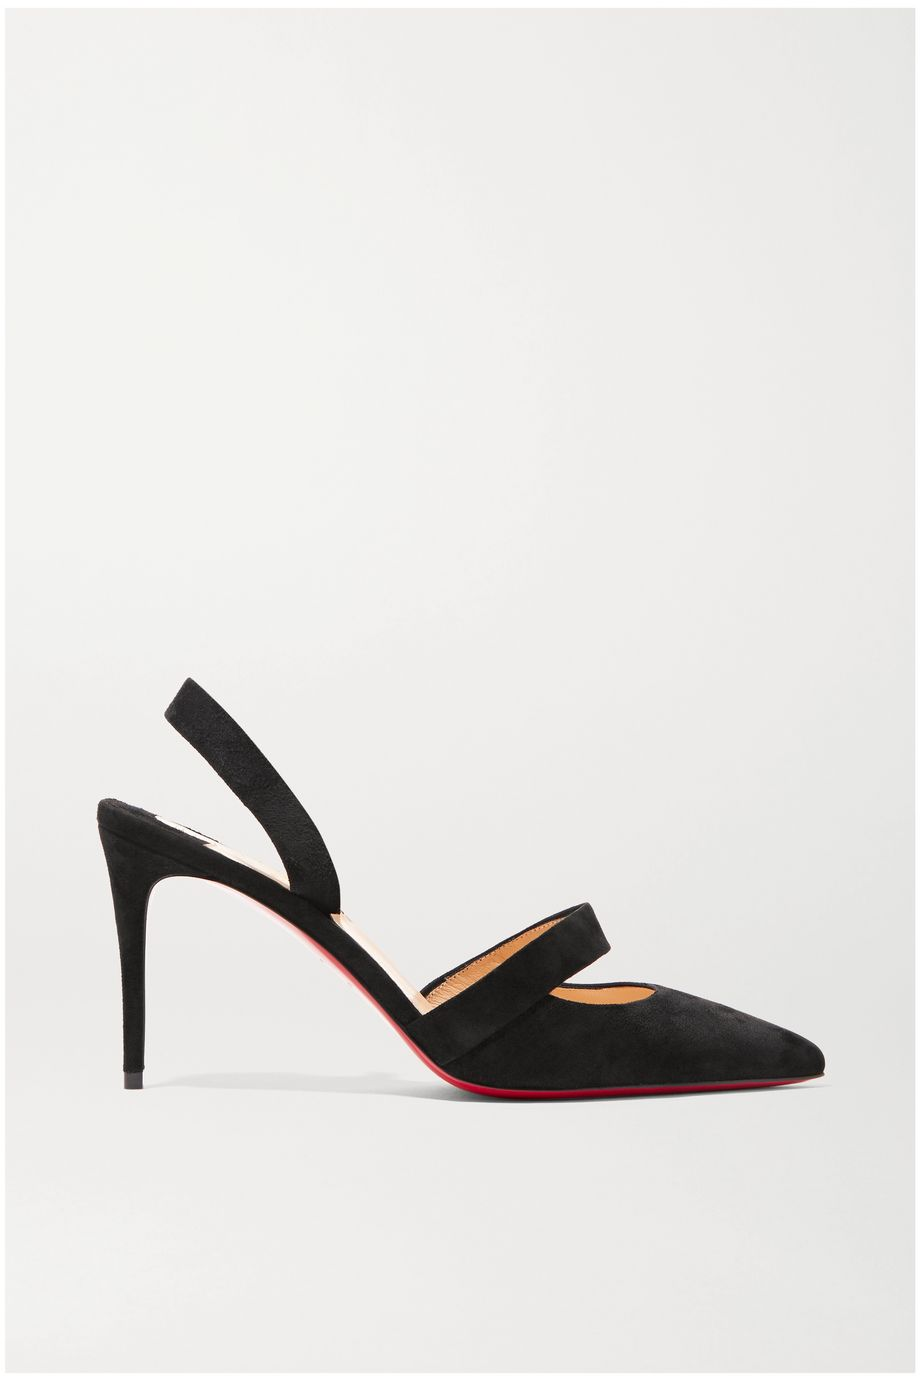 Actina 85 leather slingback pumps